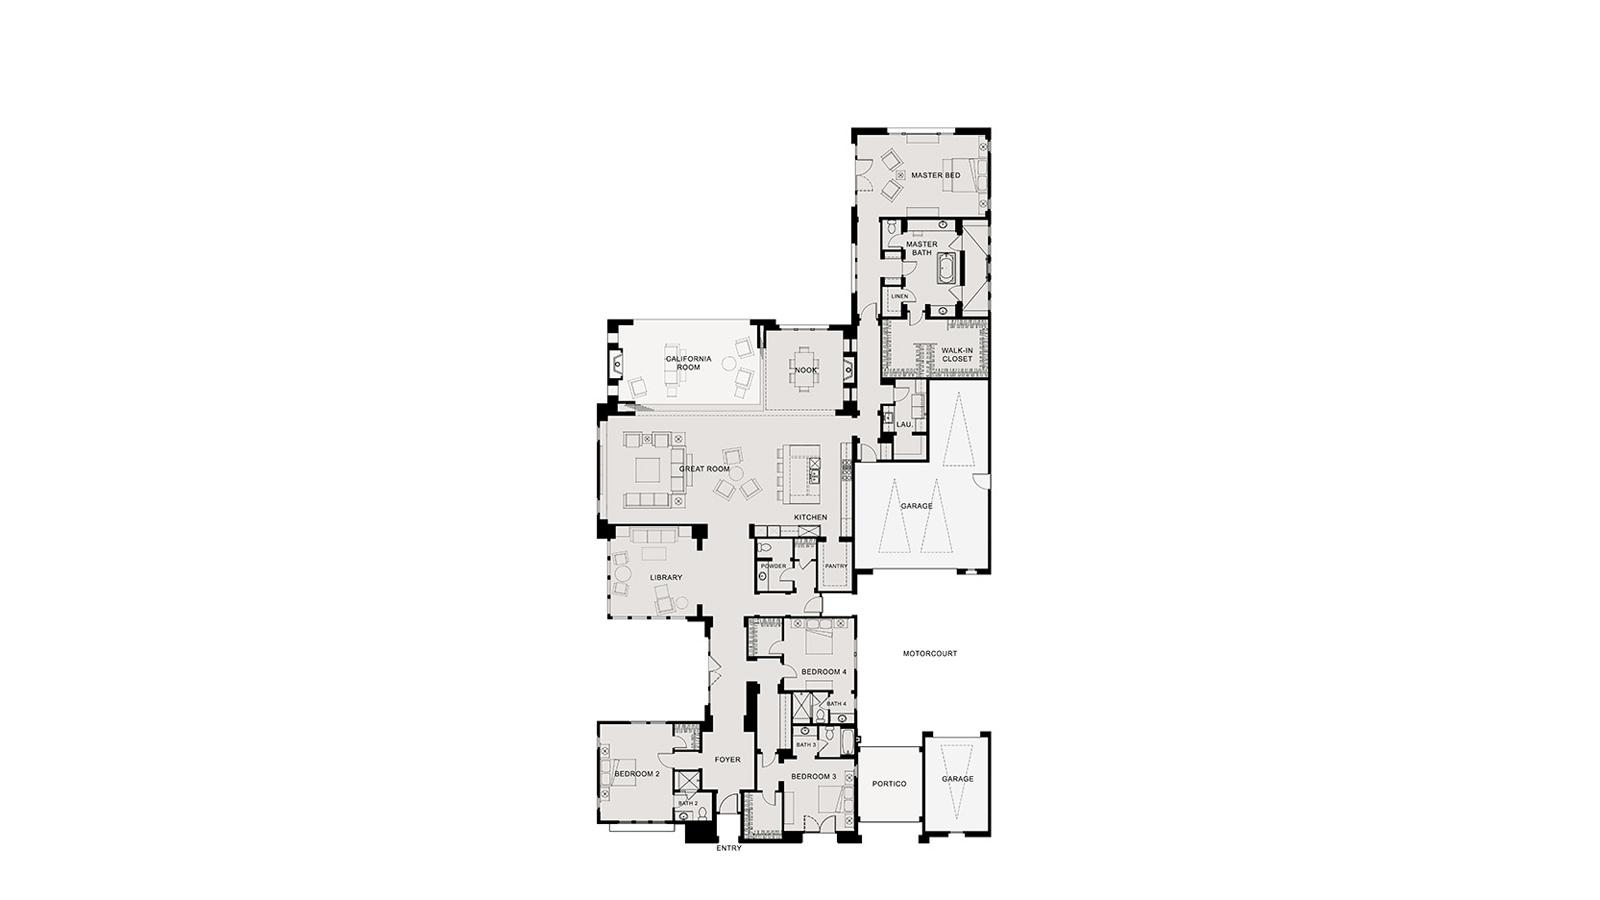 EstatesatDelSur - Robert Hidey Architects